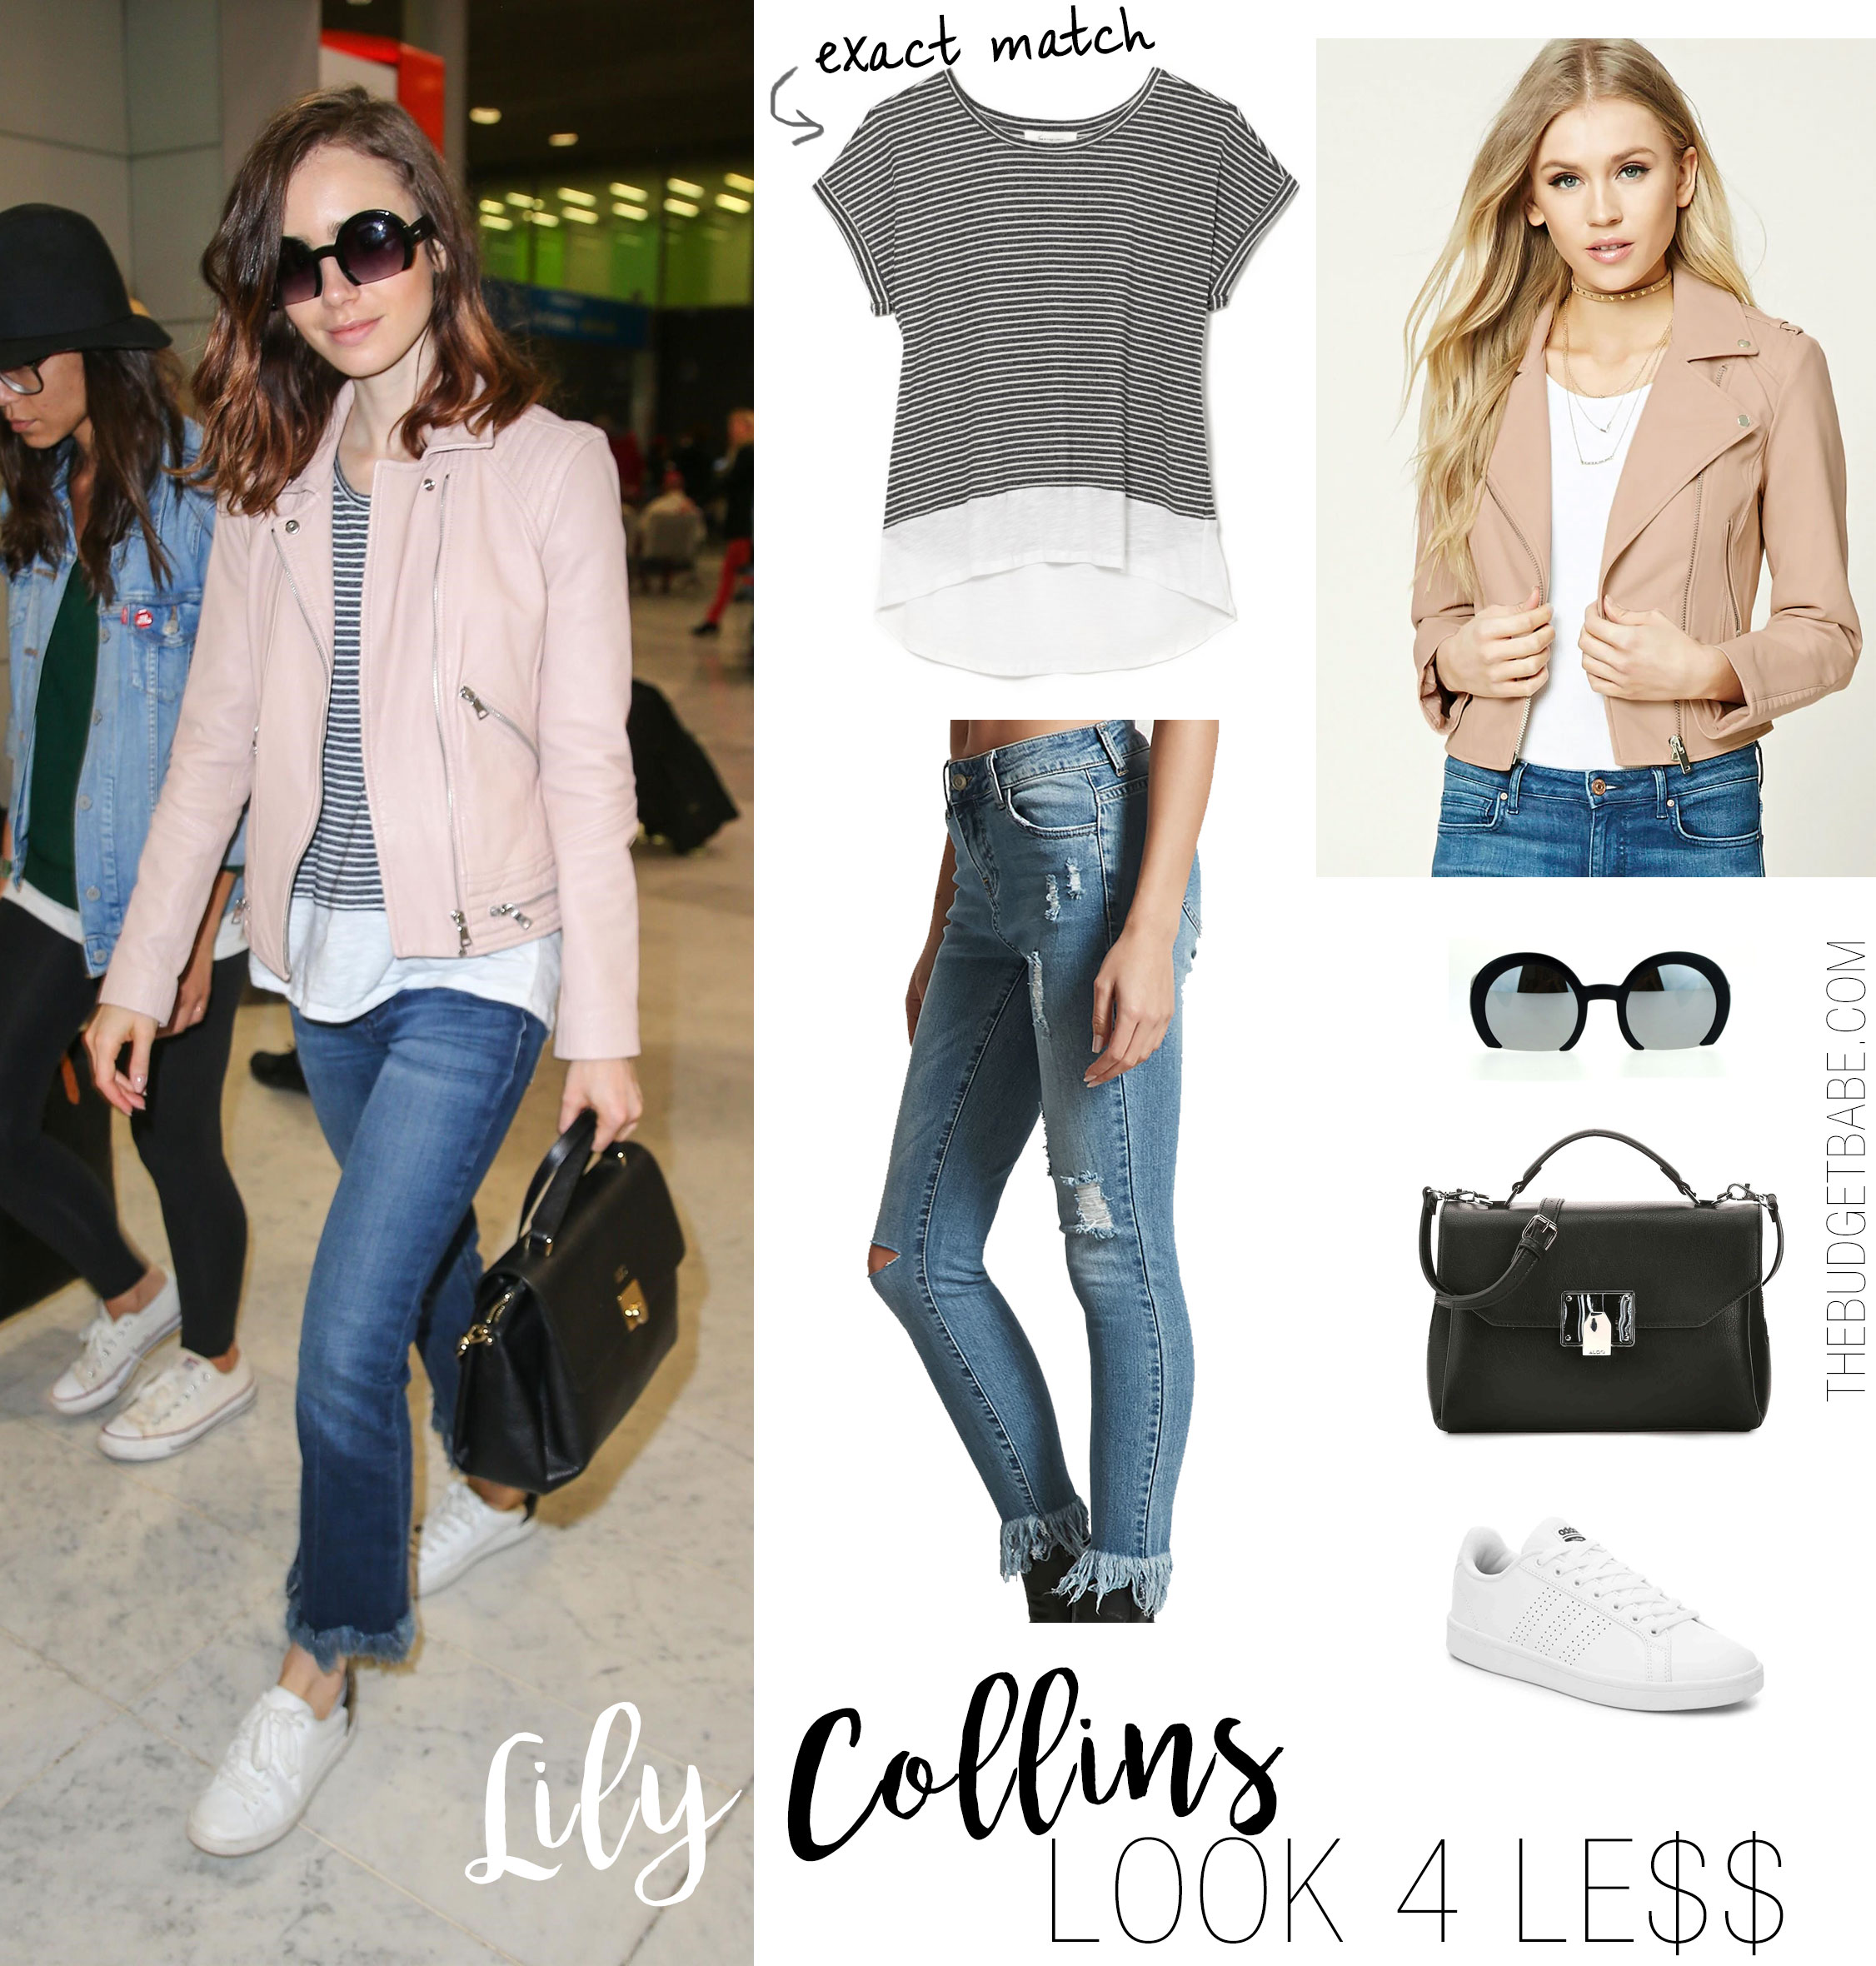 a6c4402d0756 ... 9 to 5 Chic in Her Camel Blazer and Platform Heels Lily Collins wears a  pink moto jacket and stripes.